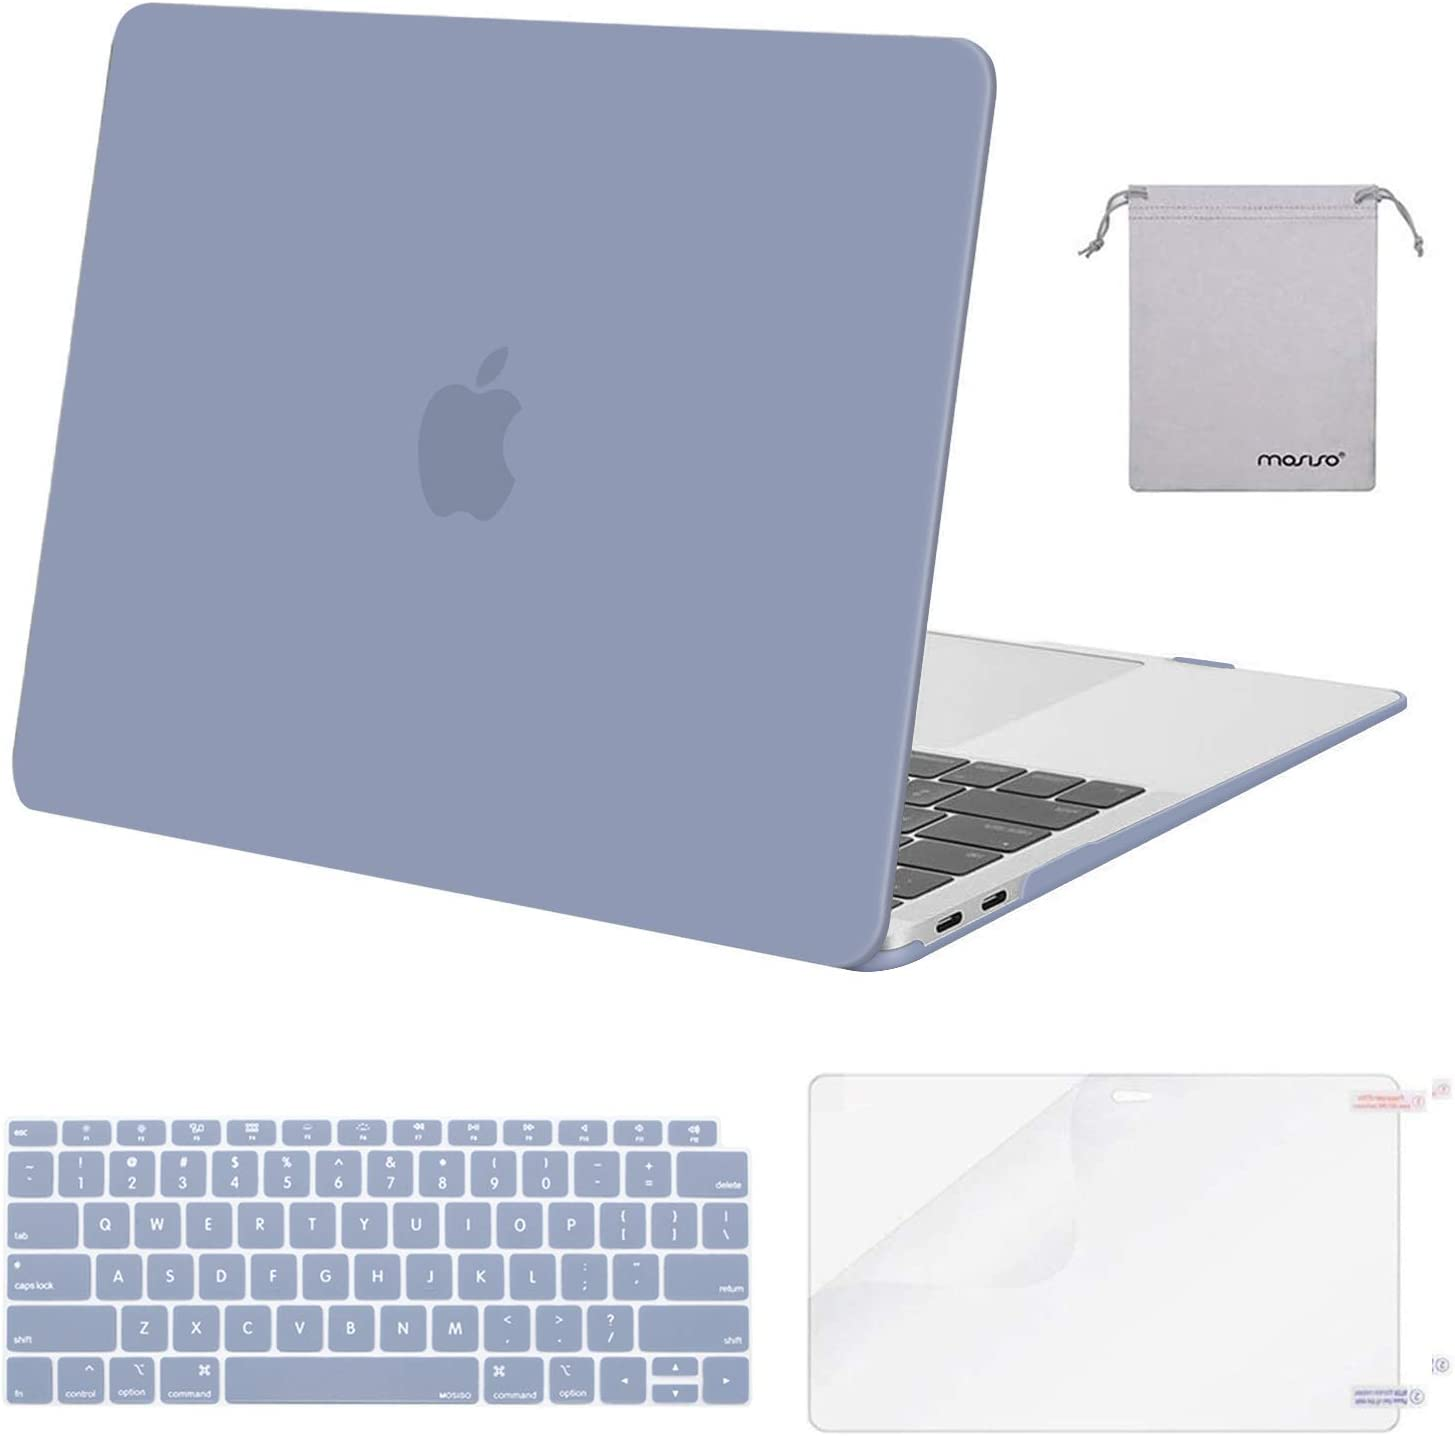 MOSISO MacBook Air 13 inch Case 2020 2019 2018 Release A2179 A1932 with Retina Display, Plastic Hard Shell&Keyboard Cover&Screen Protector&Storage Bag Compatible with MacBook Air 13, Lavender Gray